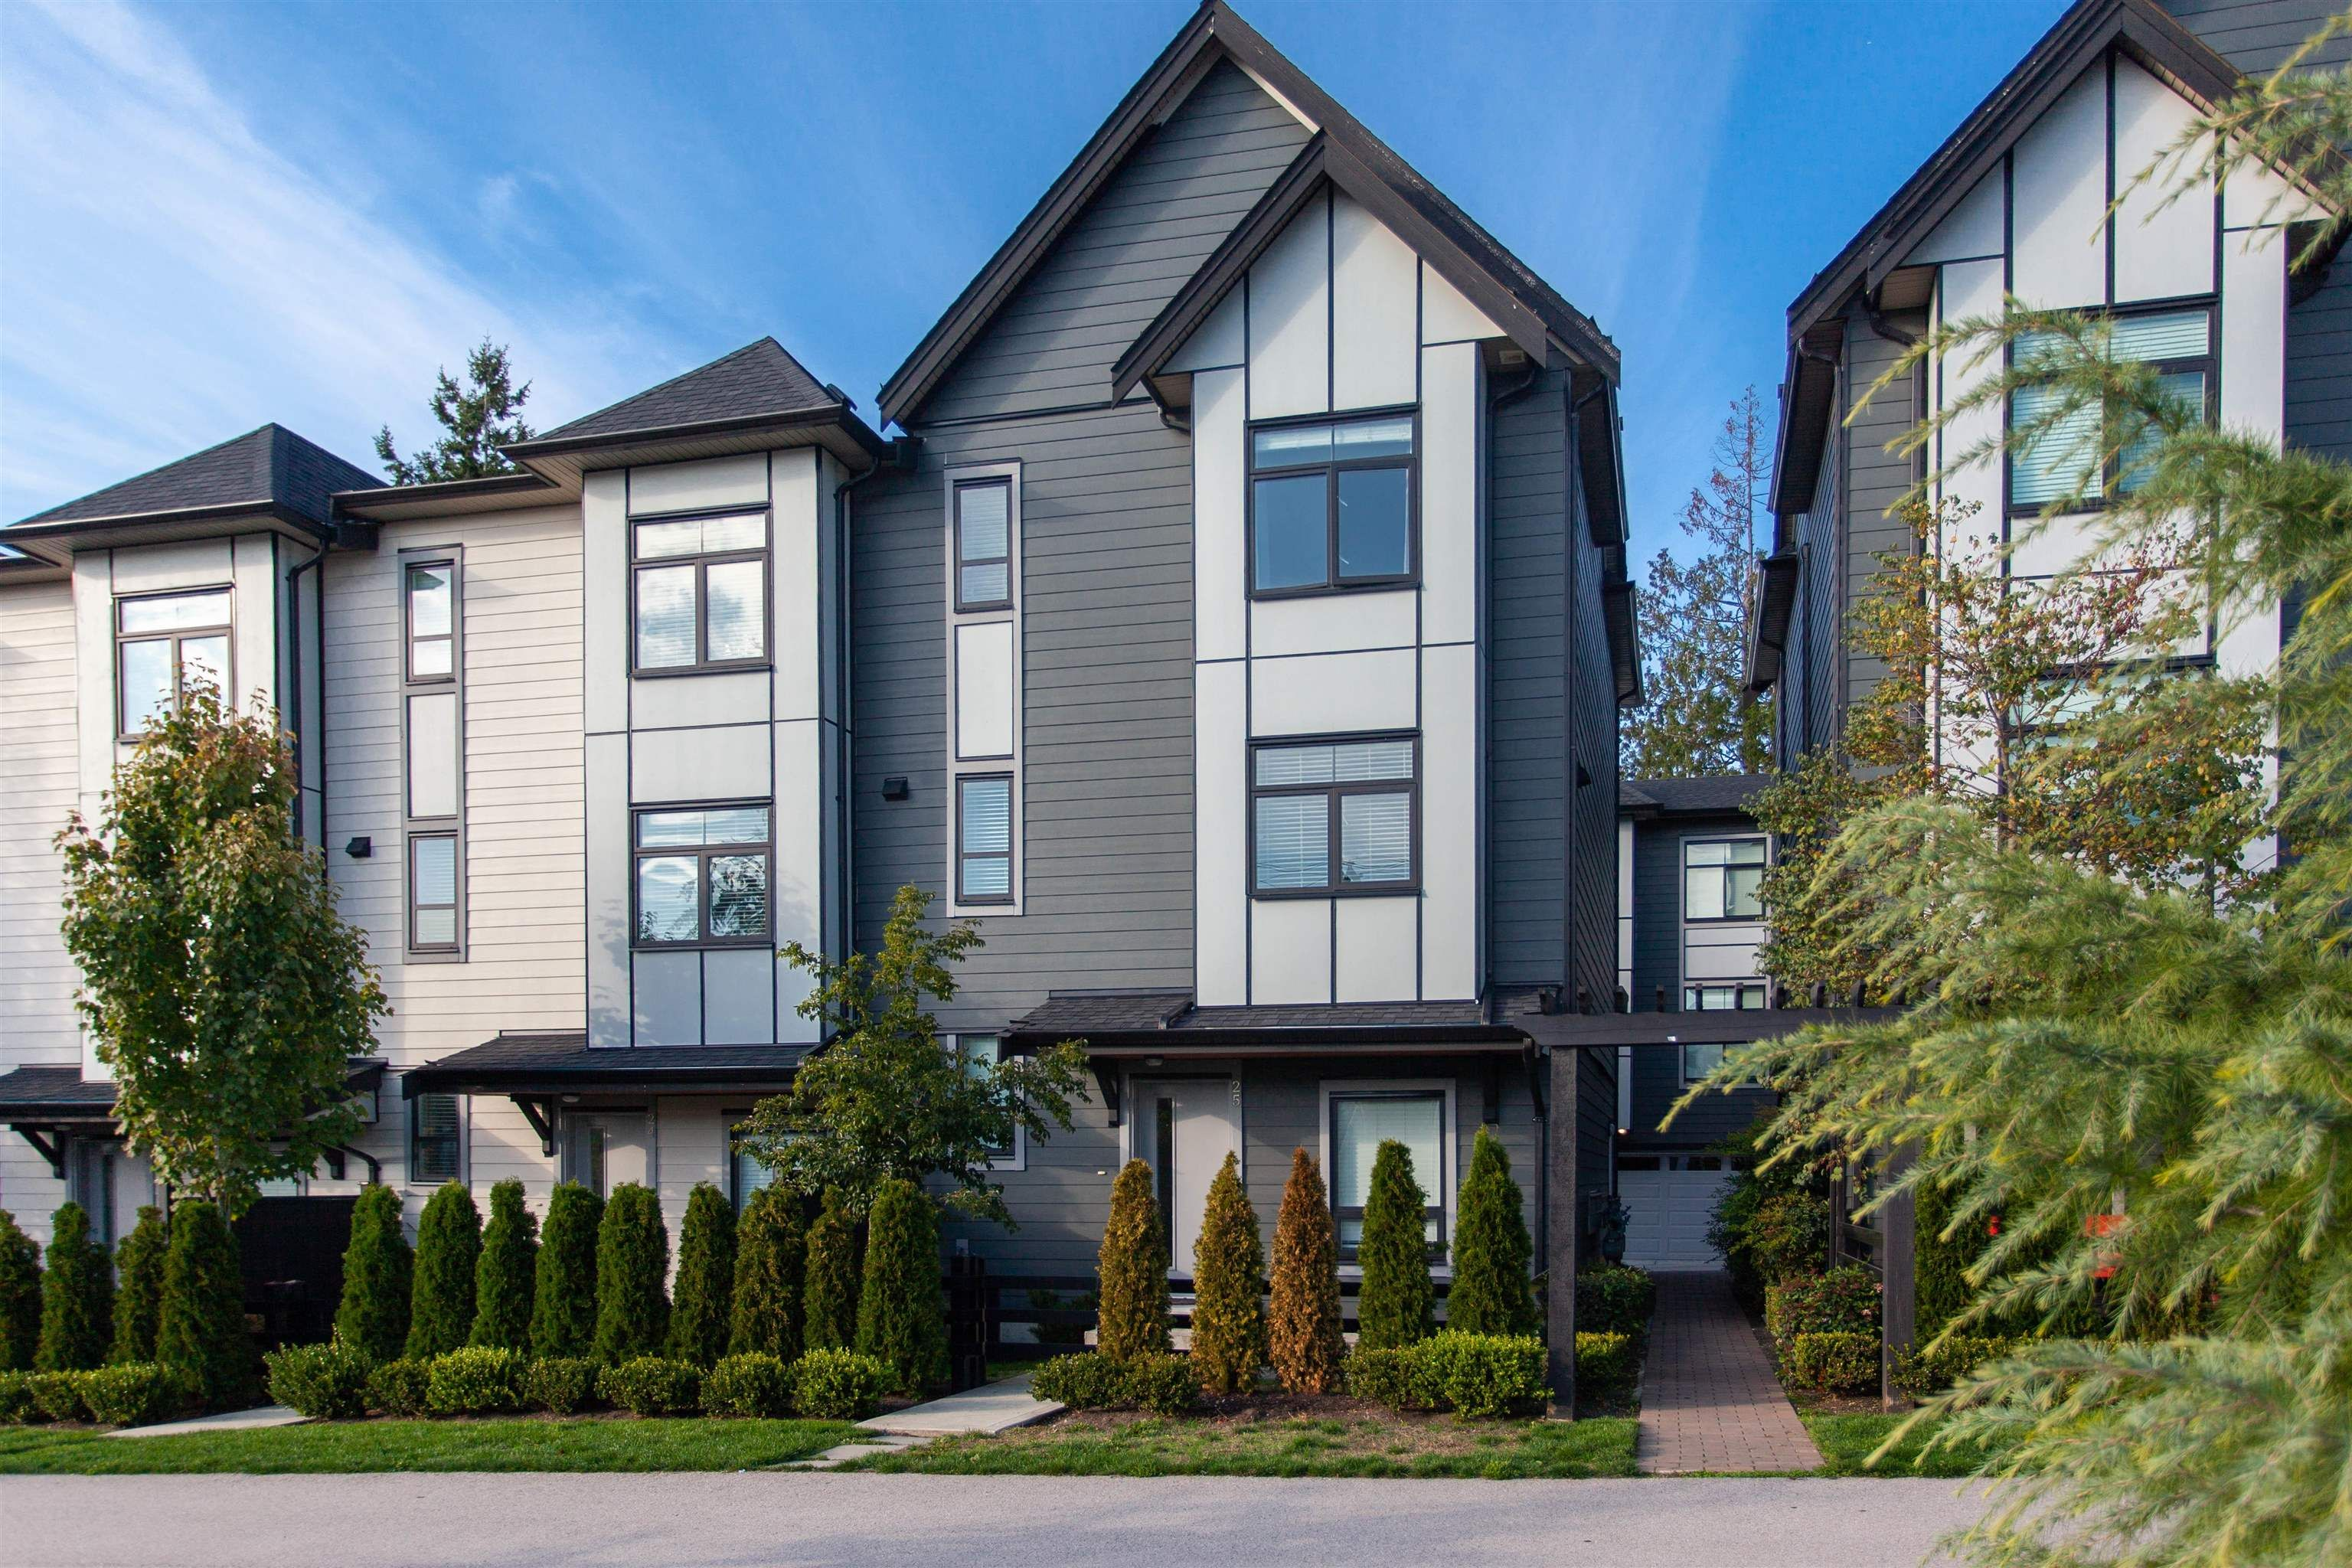 """Main Photo: 25 2427 164 Street in Surrey: Grandview Surrey Townhouse for sale in """"SMITH"""" (South Surrey White Rock)  : MLS®# R2624142"""